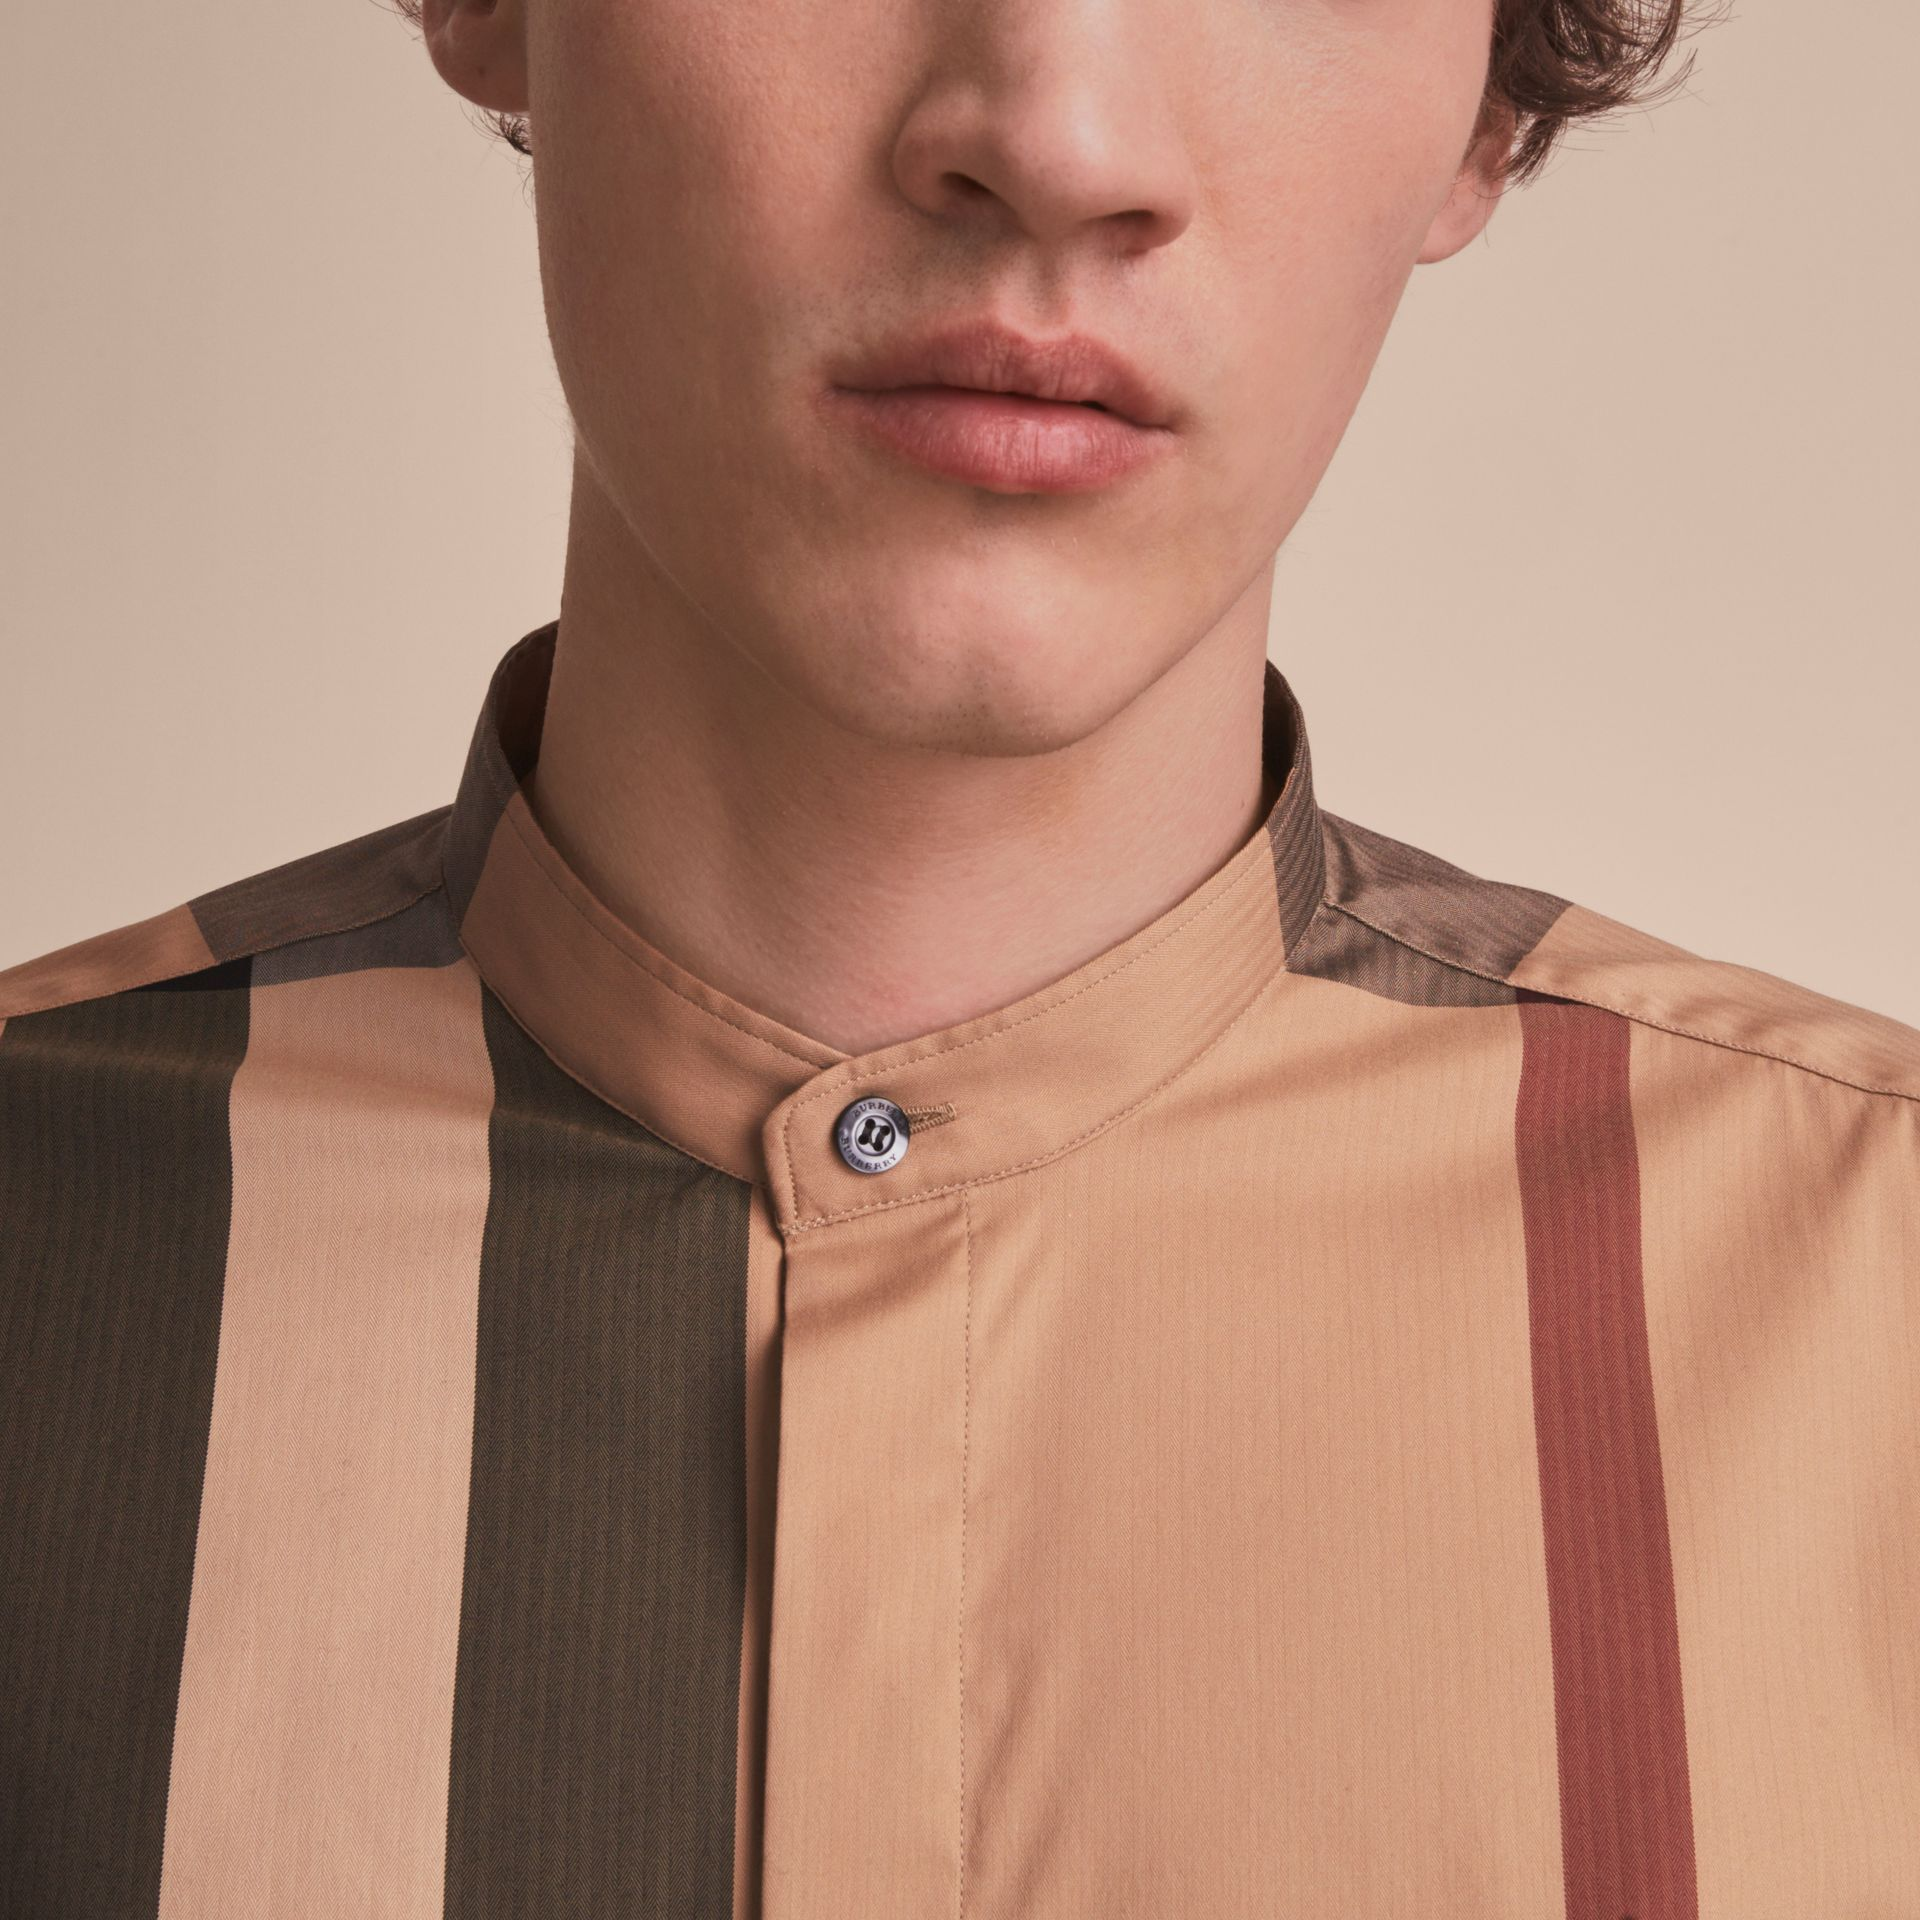 Grandad Collar Check Cotton Blend Shirt in Camel - Men | Burberry - gallery image 5